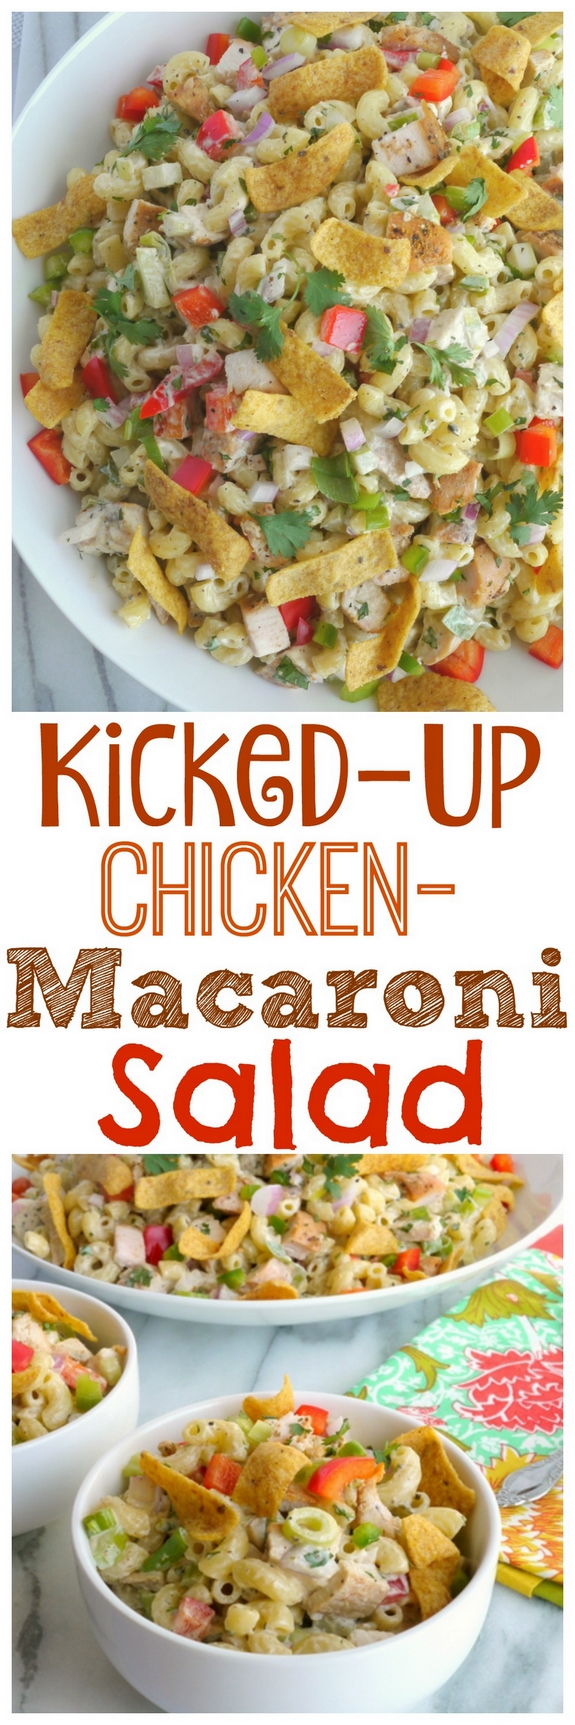 Kicked-Up Chicken-Macaroni Salad in text with overhead views of the salad in various bowls.